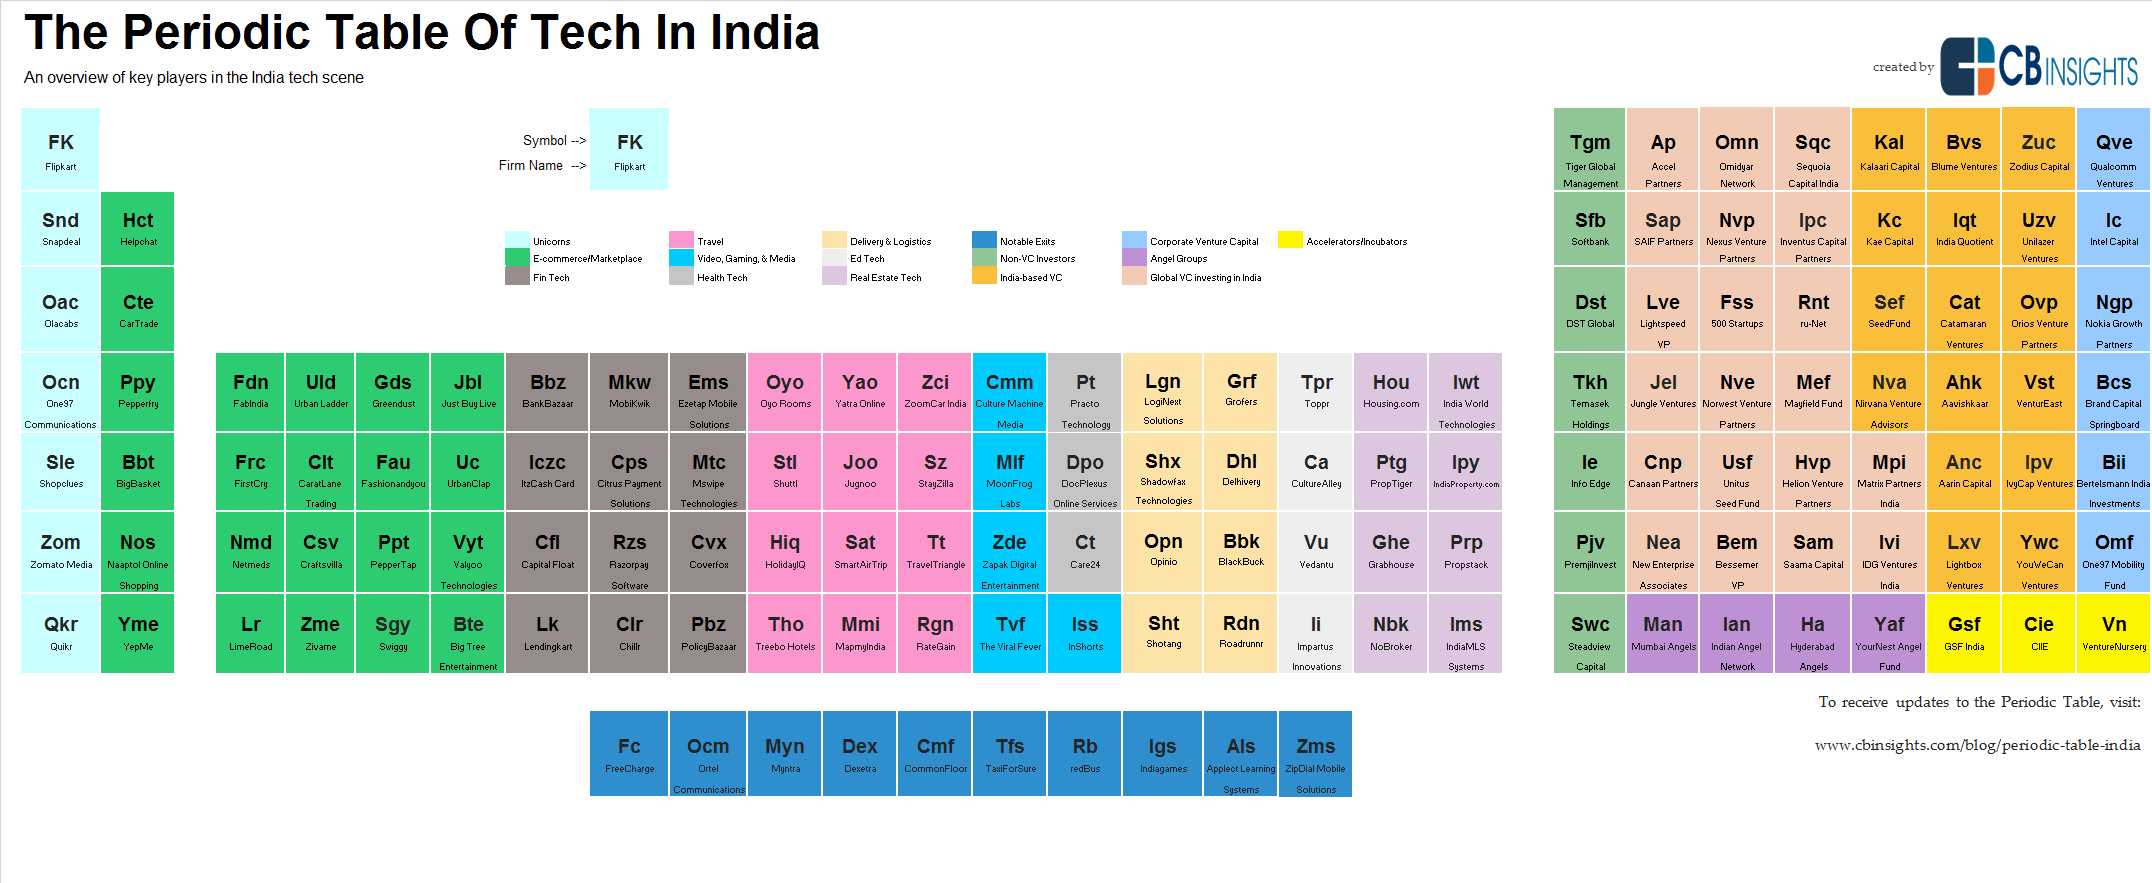 The Periodic Table Of Tech In India